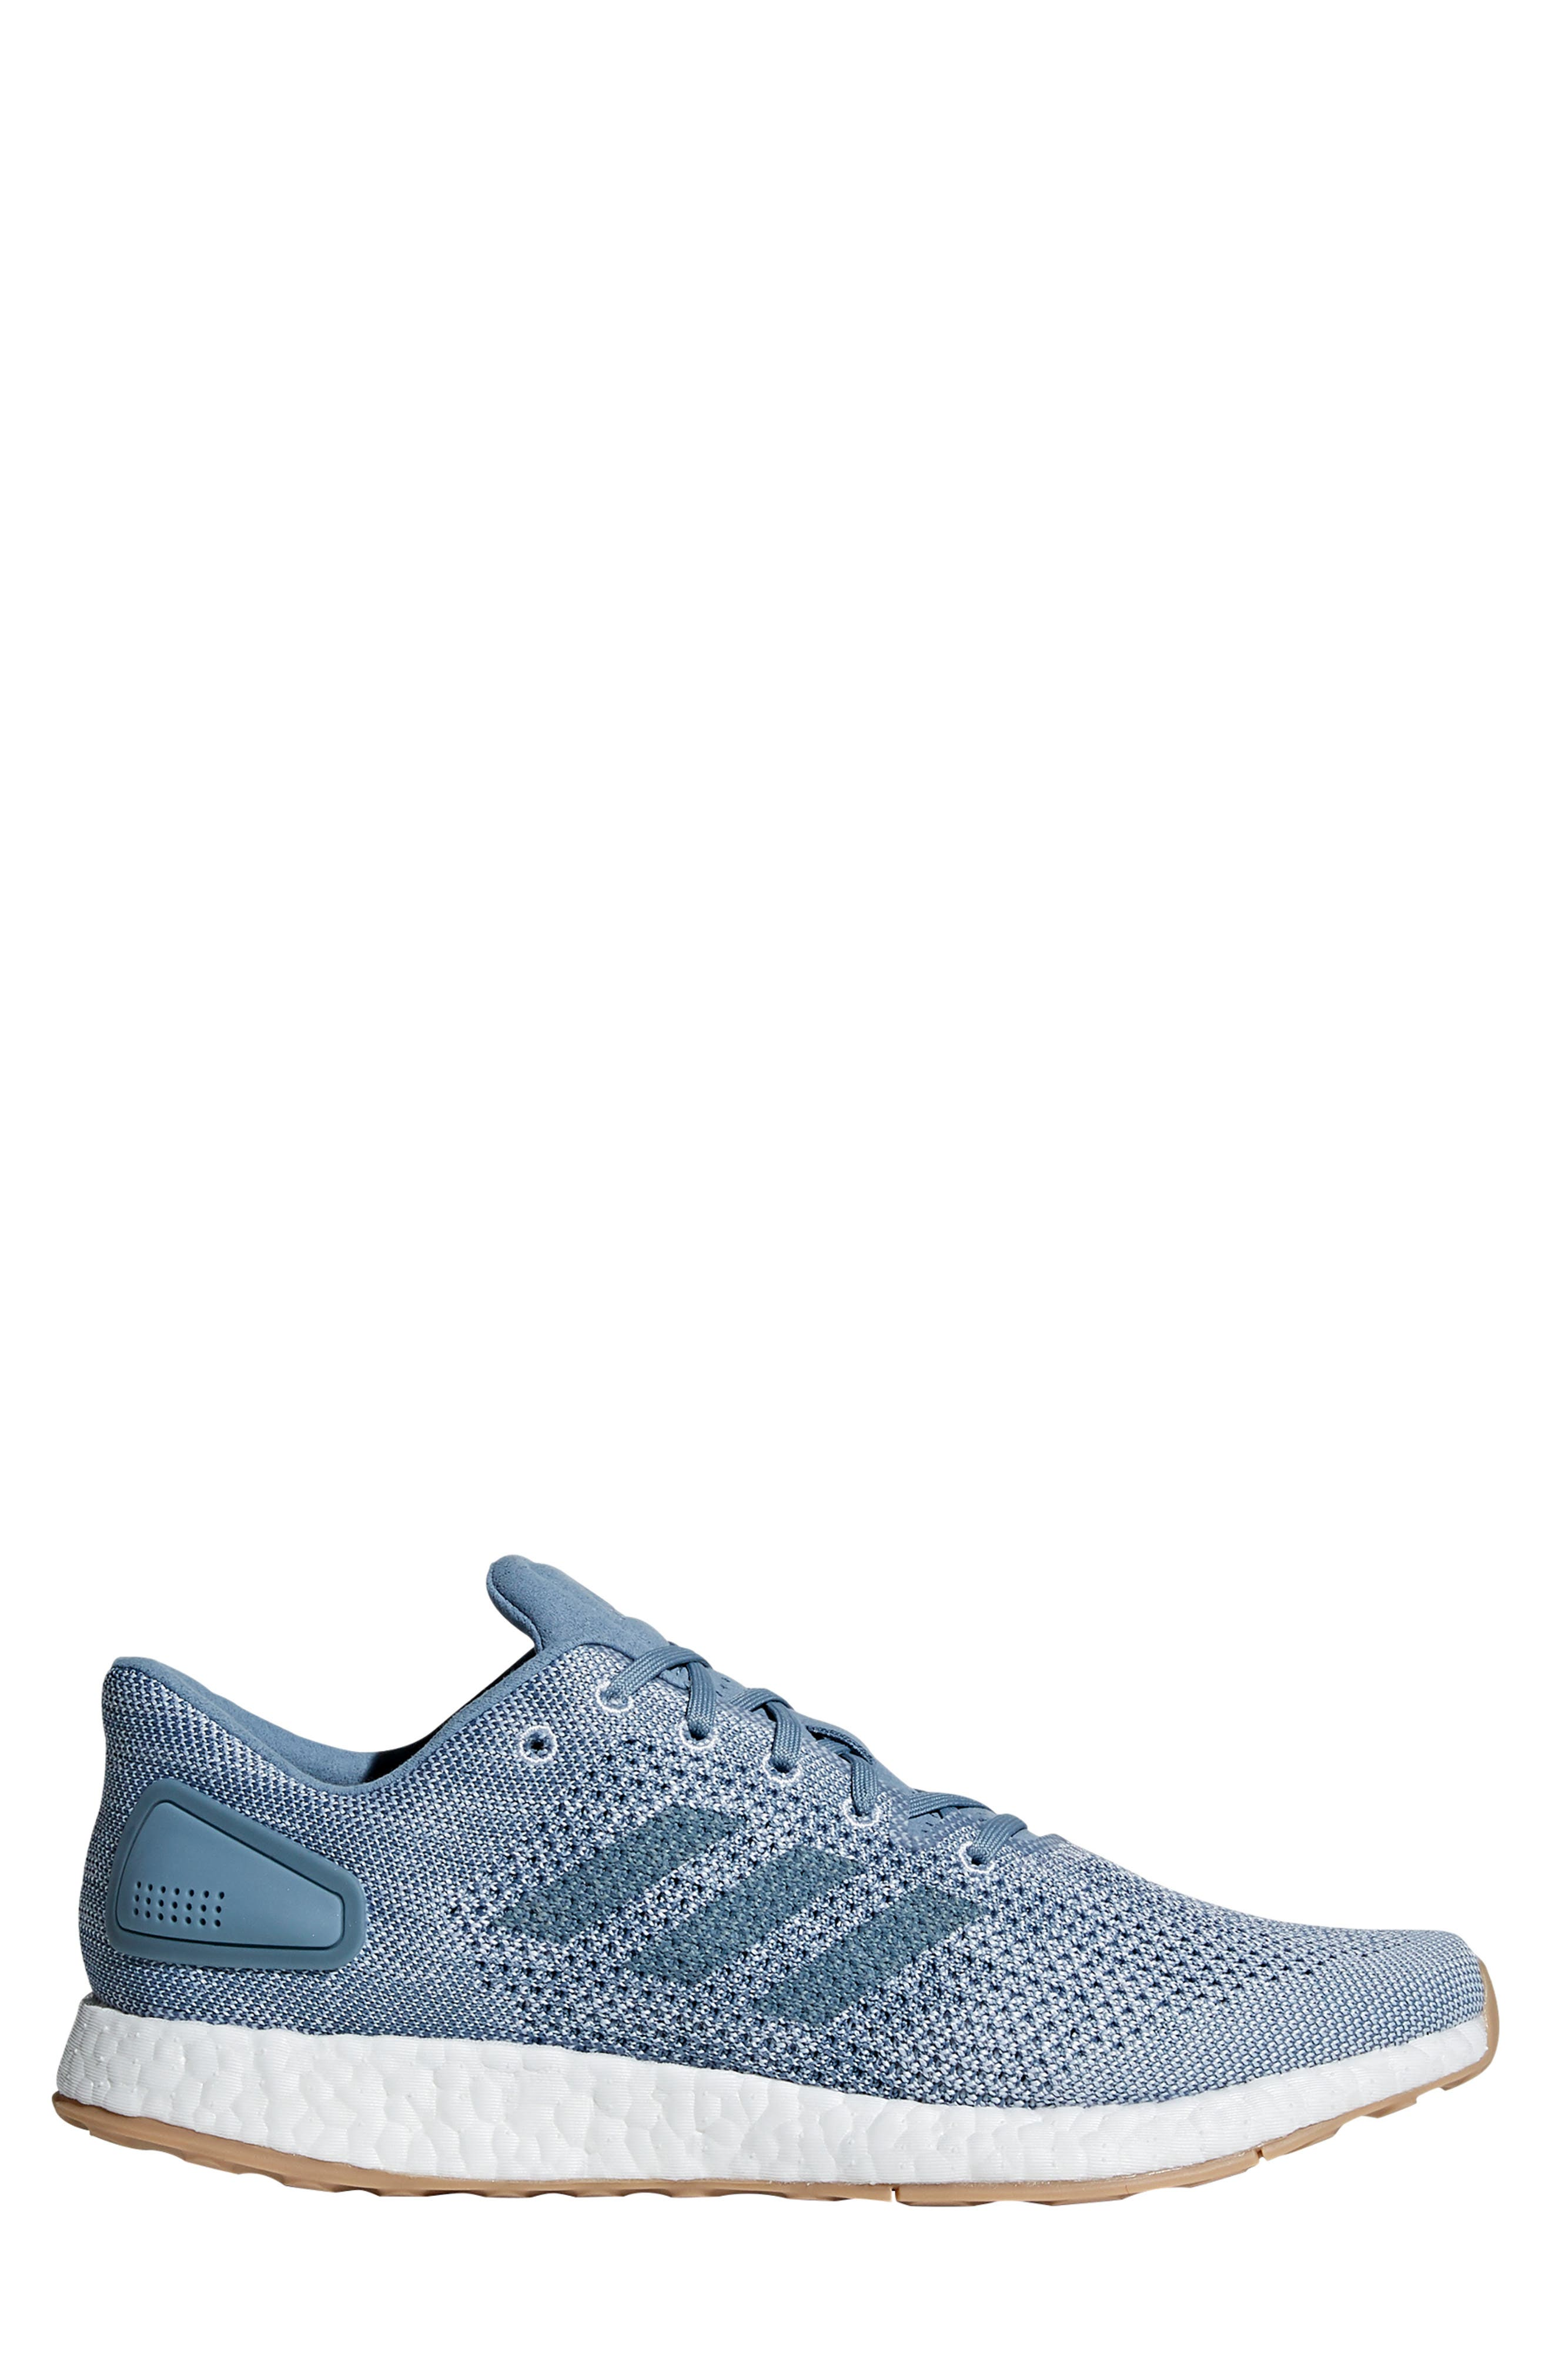 PureBoost DPR Running Shoe,                             Alternate thumbnail 3, color,                             360